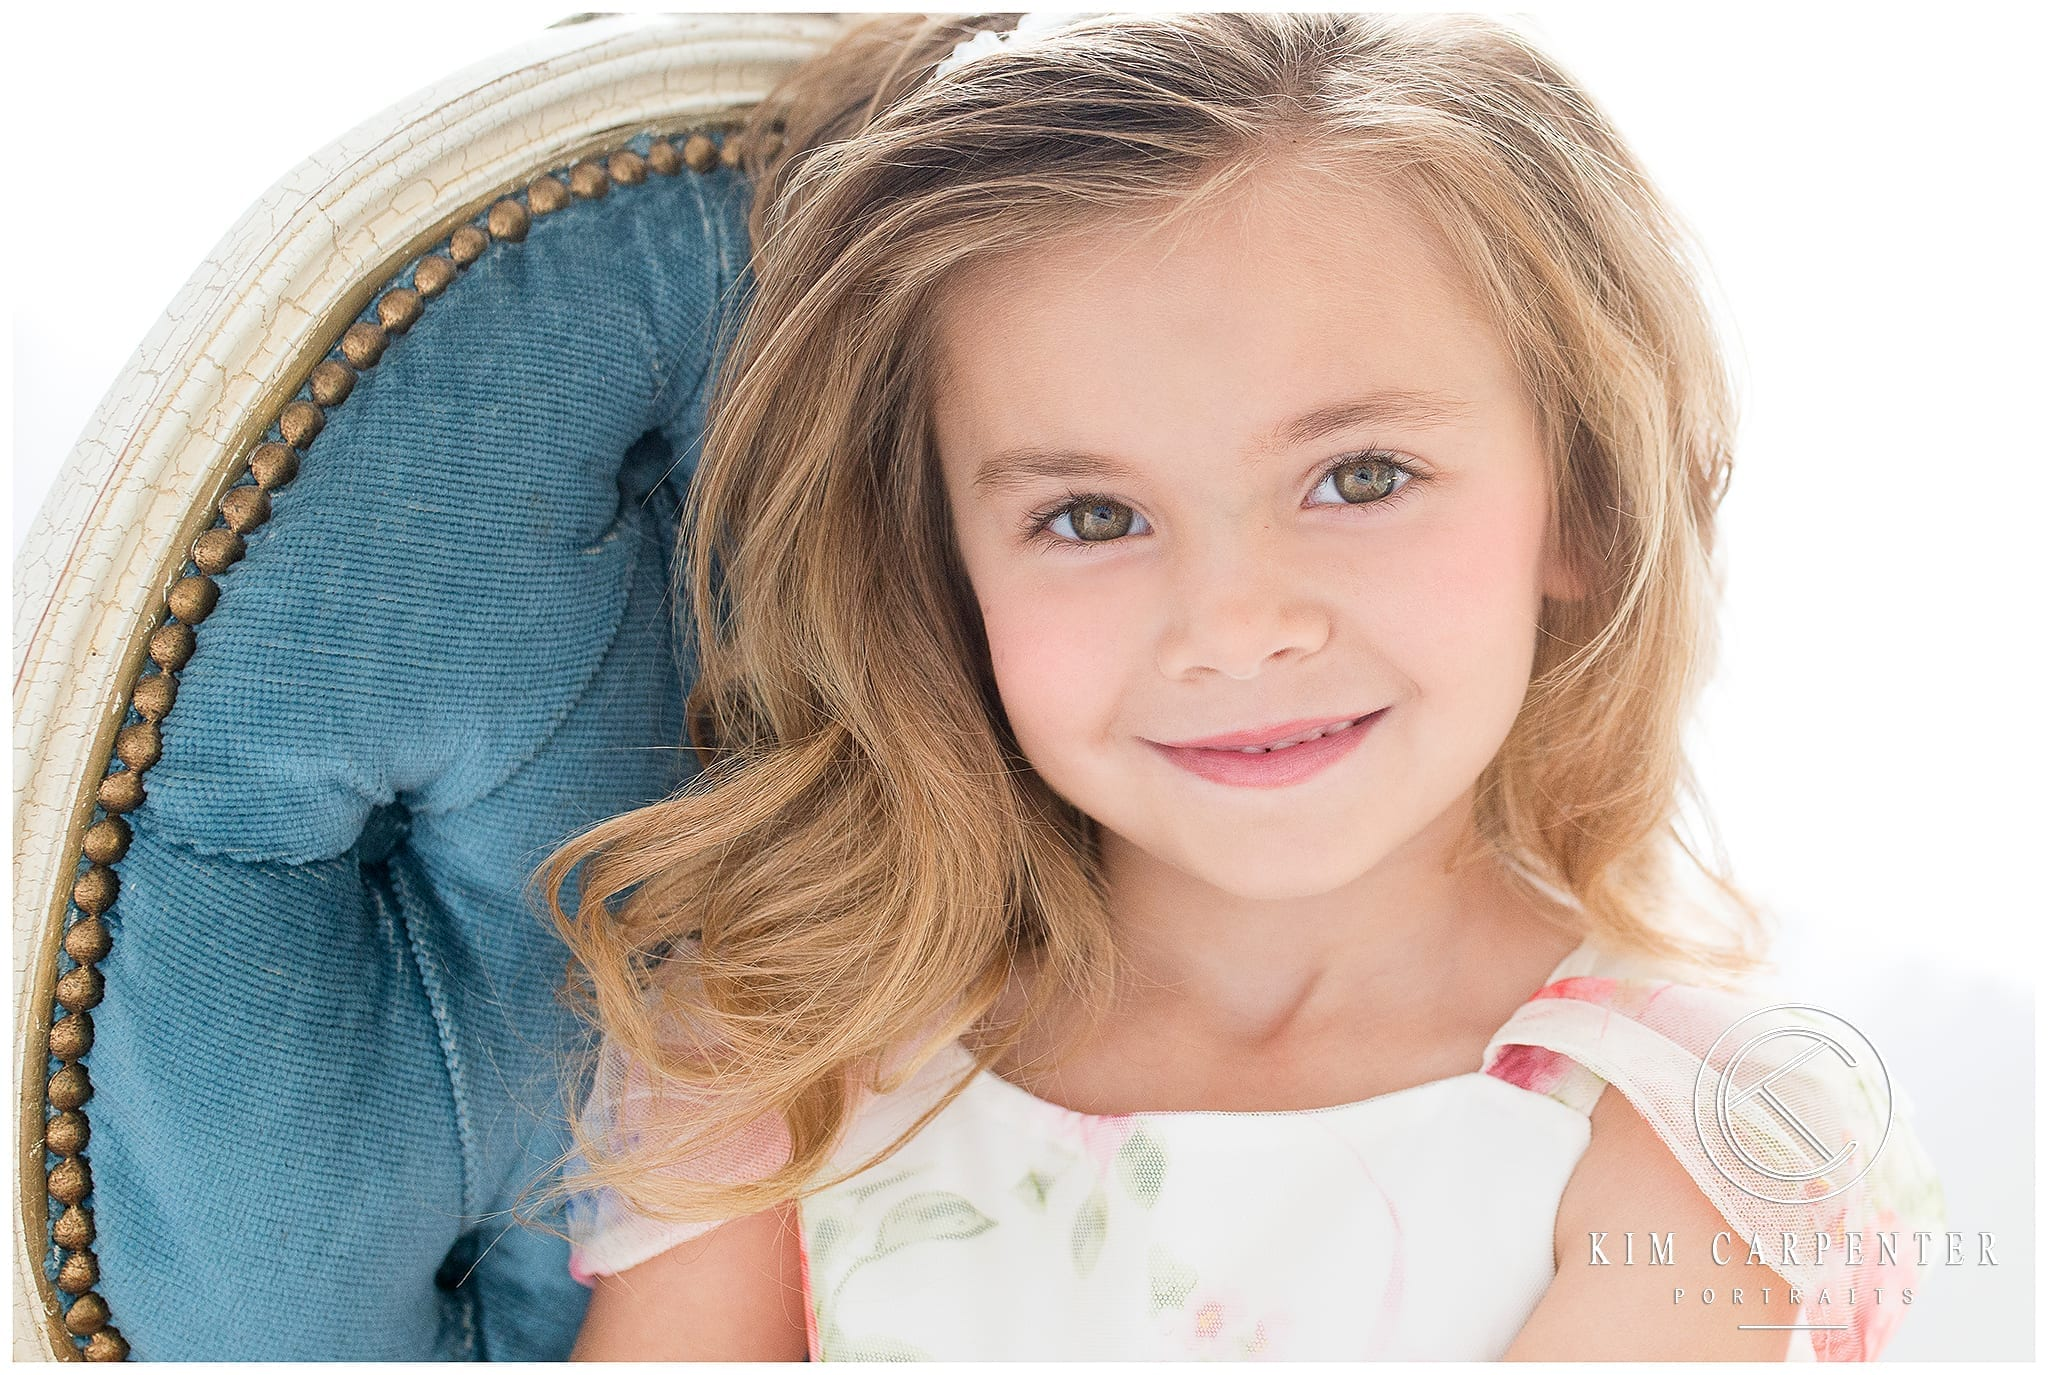 A close up of a little girl smiling with a chair in the background.